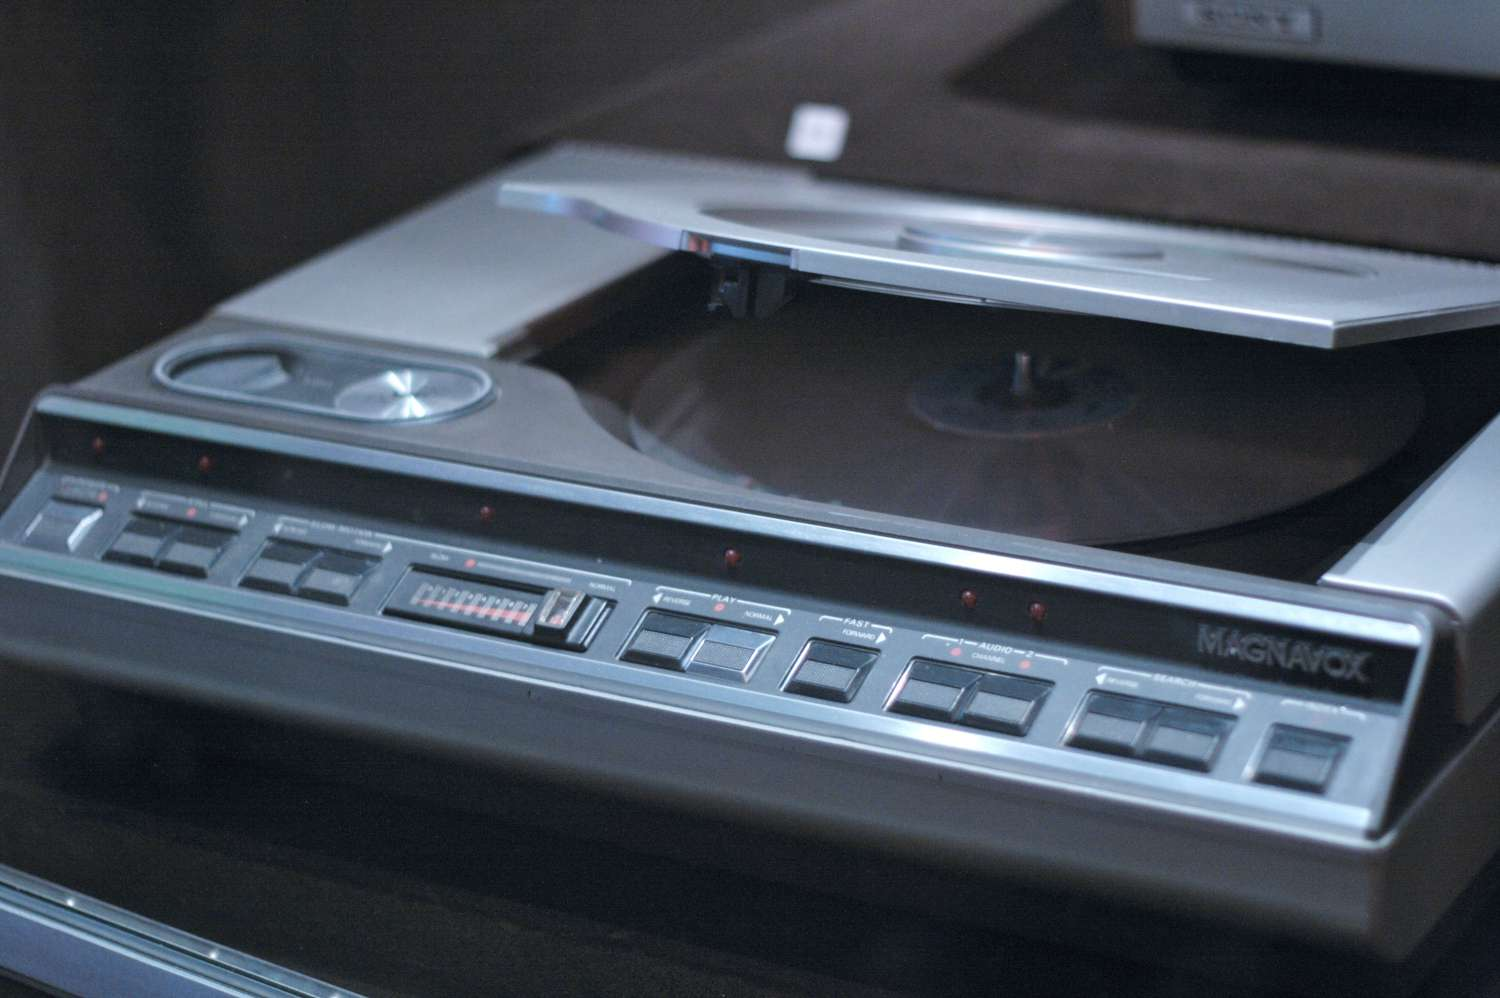 Magnaxbox LaserDisc player with disc slot open